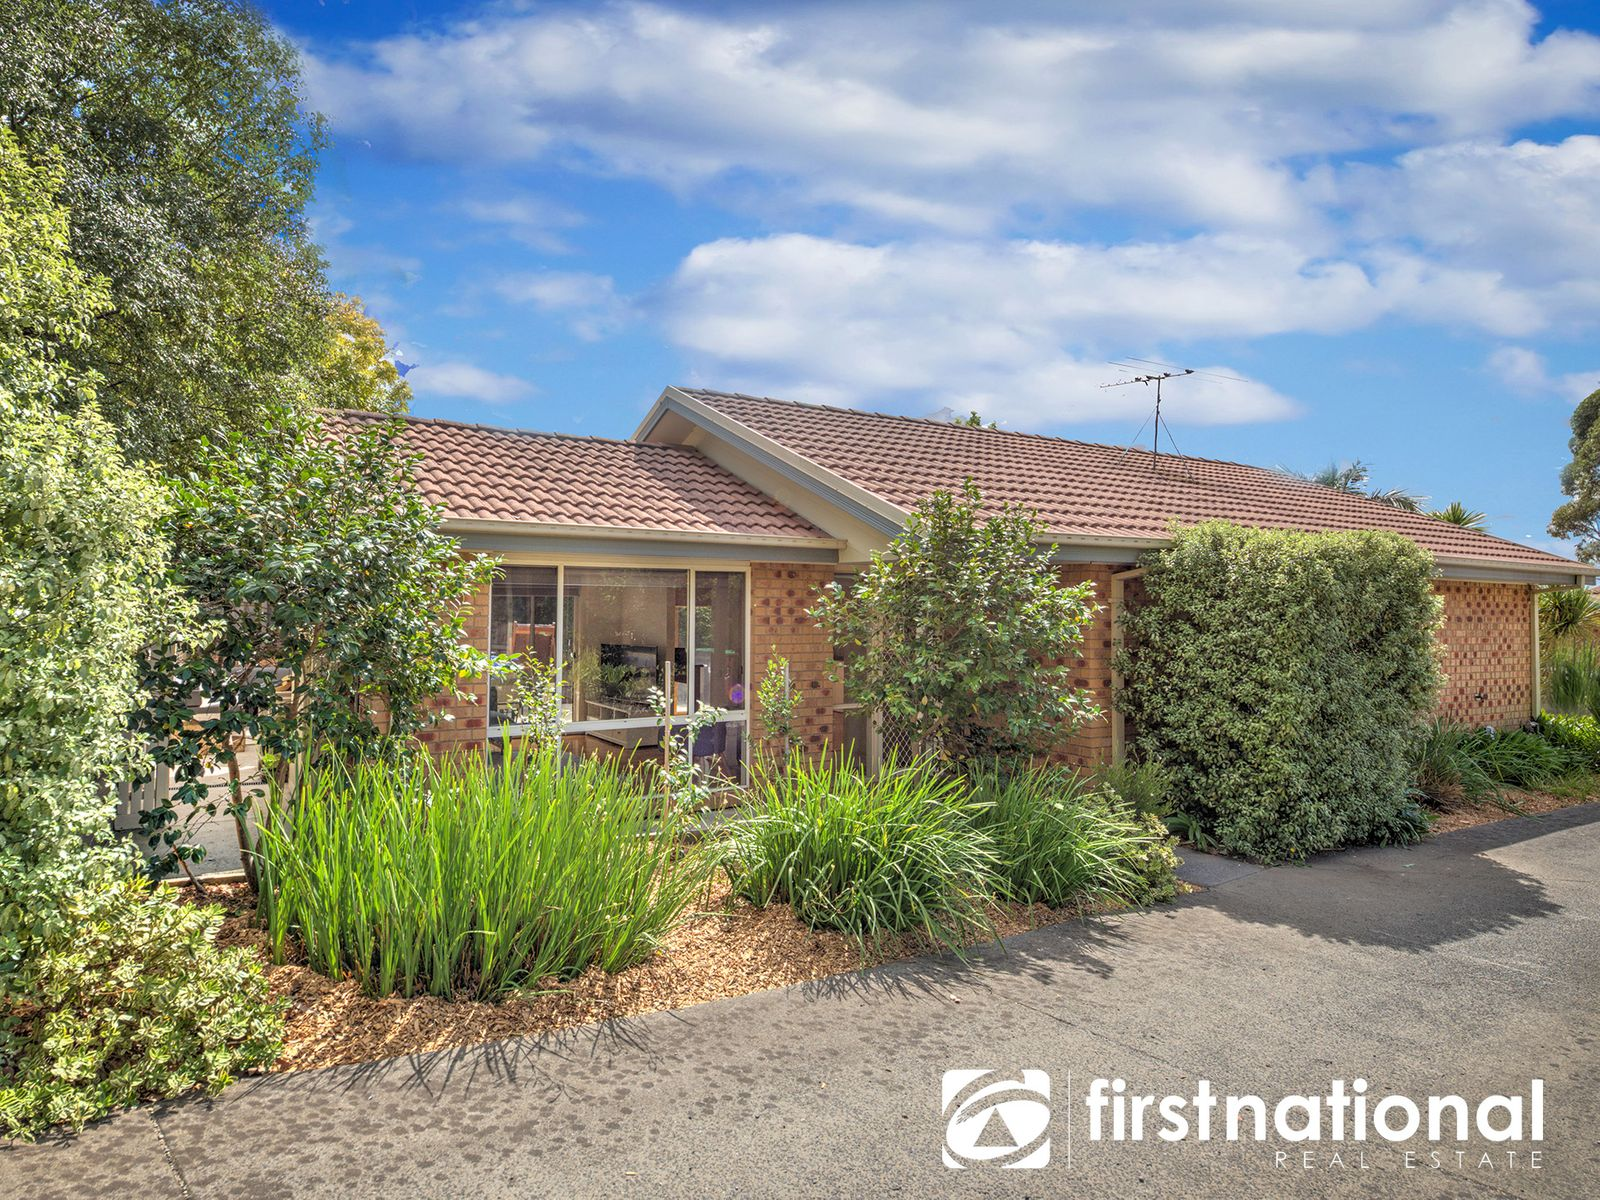 1/10 Buchanan Road, Berwick, VIC 3806